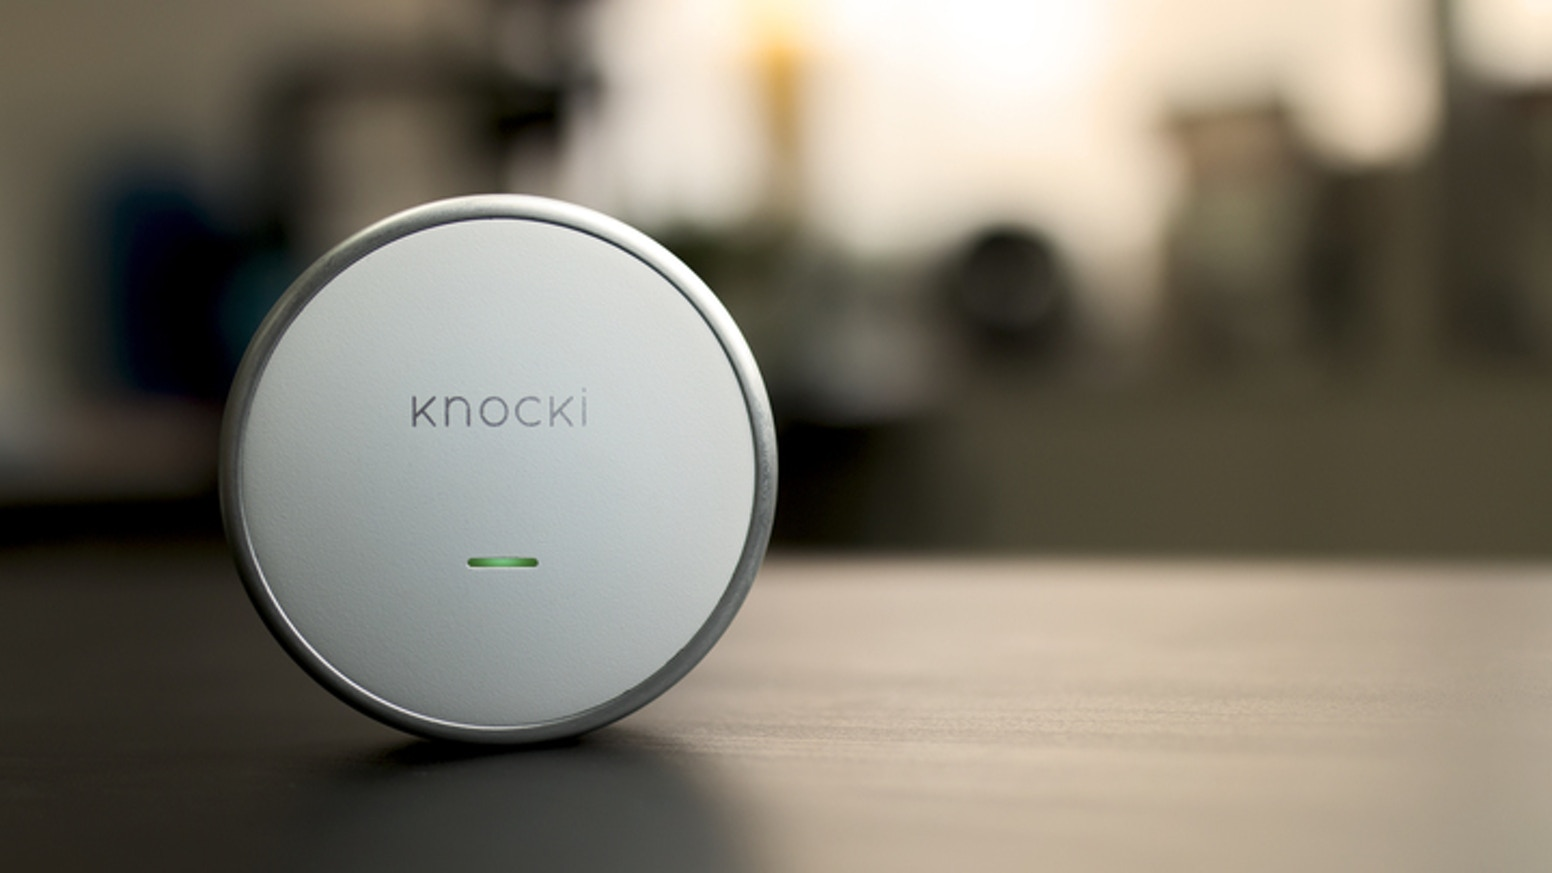 Knocki is a smart device that gives you control of your favorite functions through the surfaces around you.